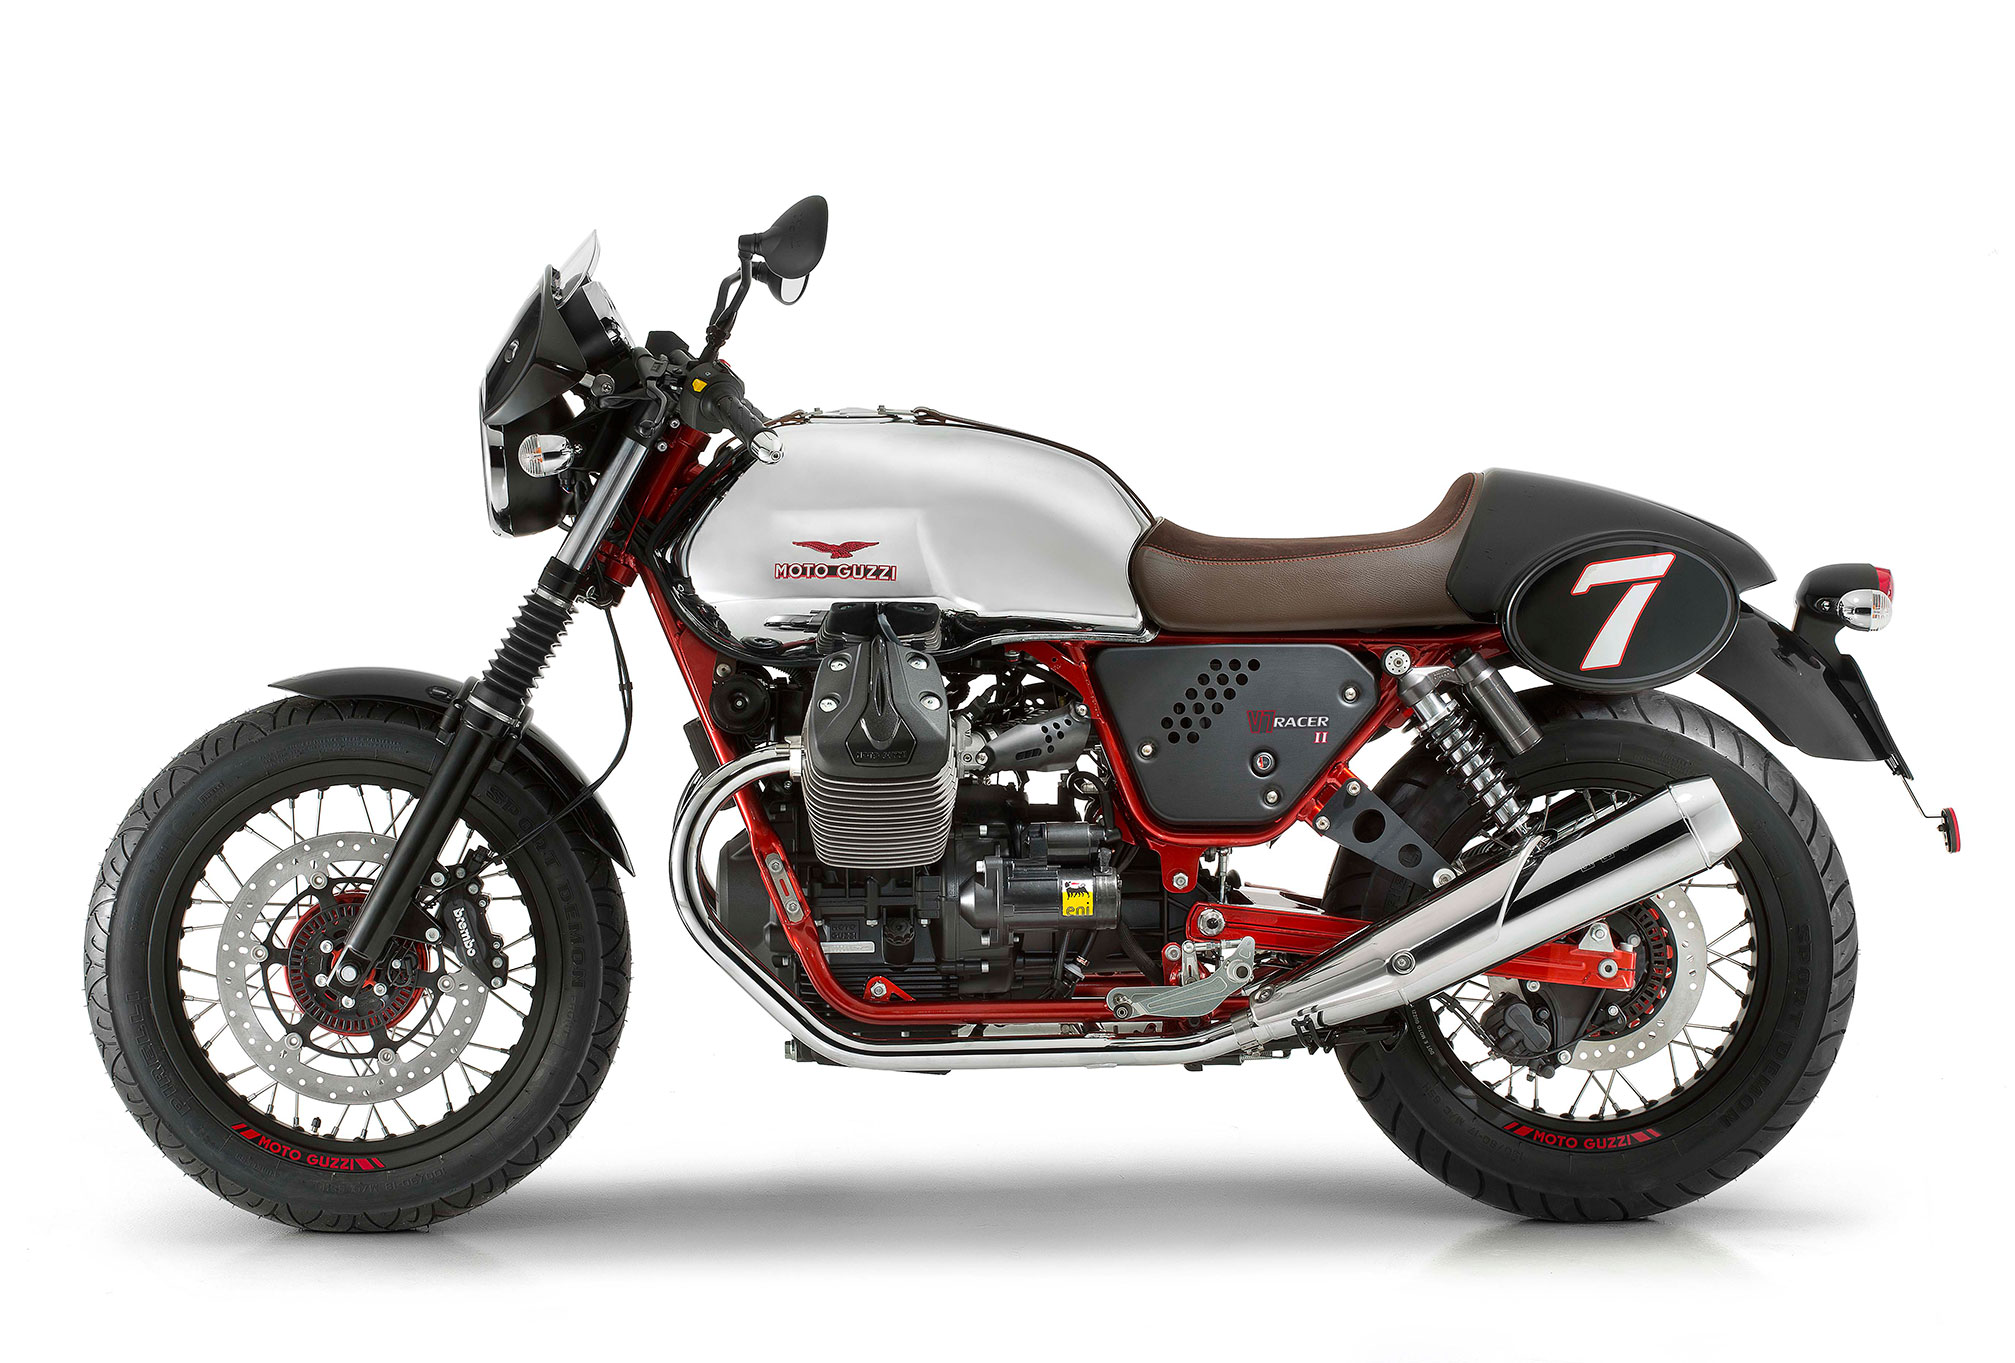 2015 moto guzzi v7 ii racer review. Black Bedroom Furniture Sets. Home Design Ideas